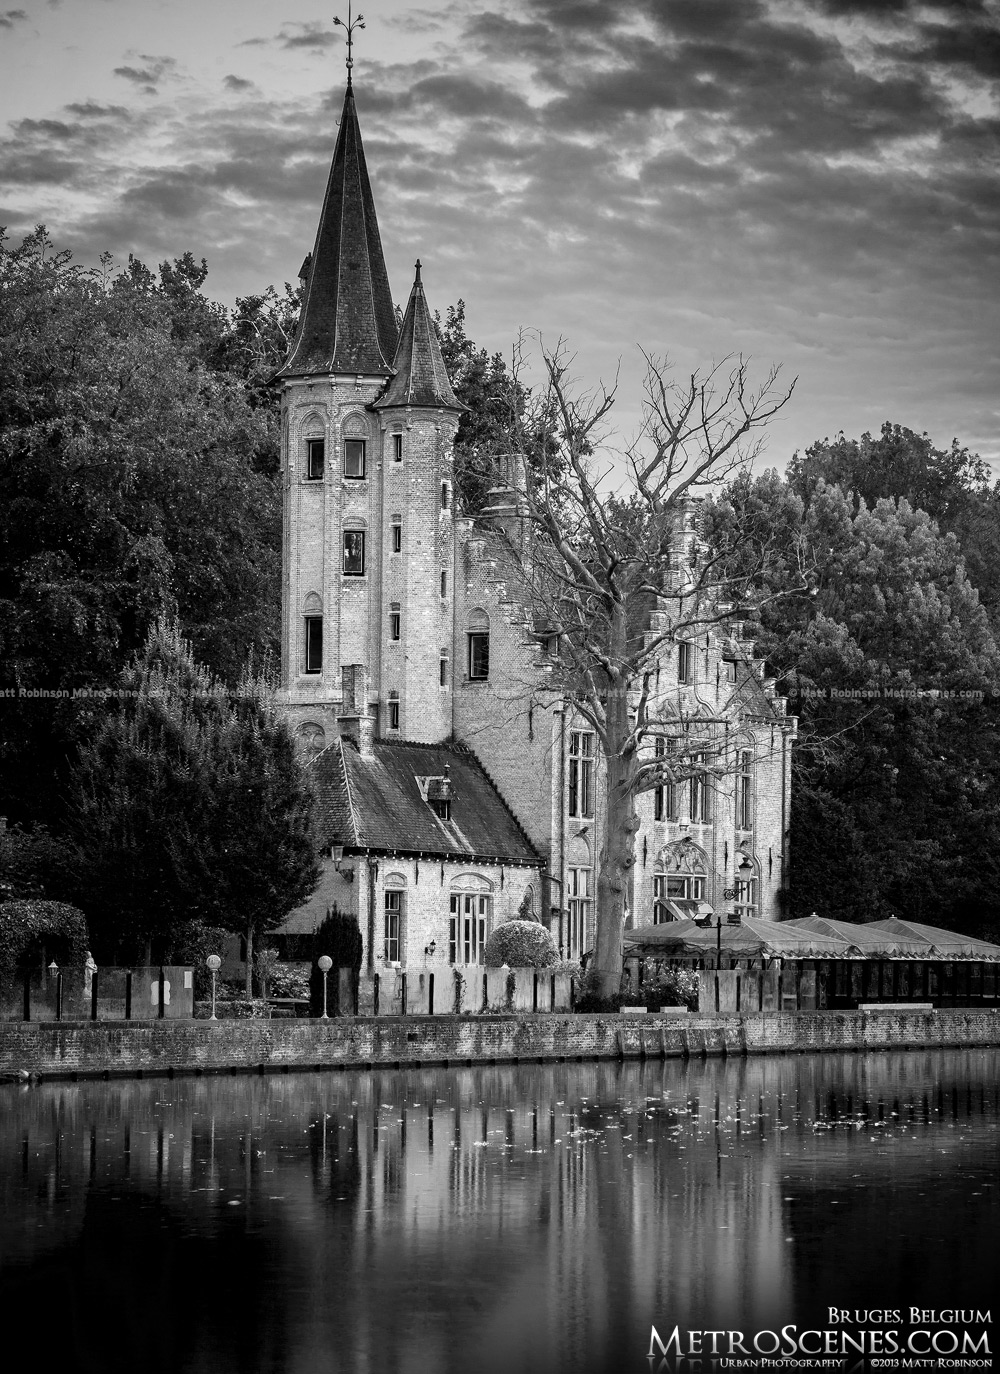 Minnewater black and white, Brugge